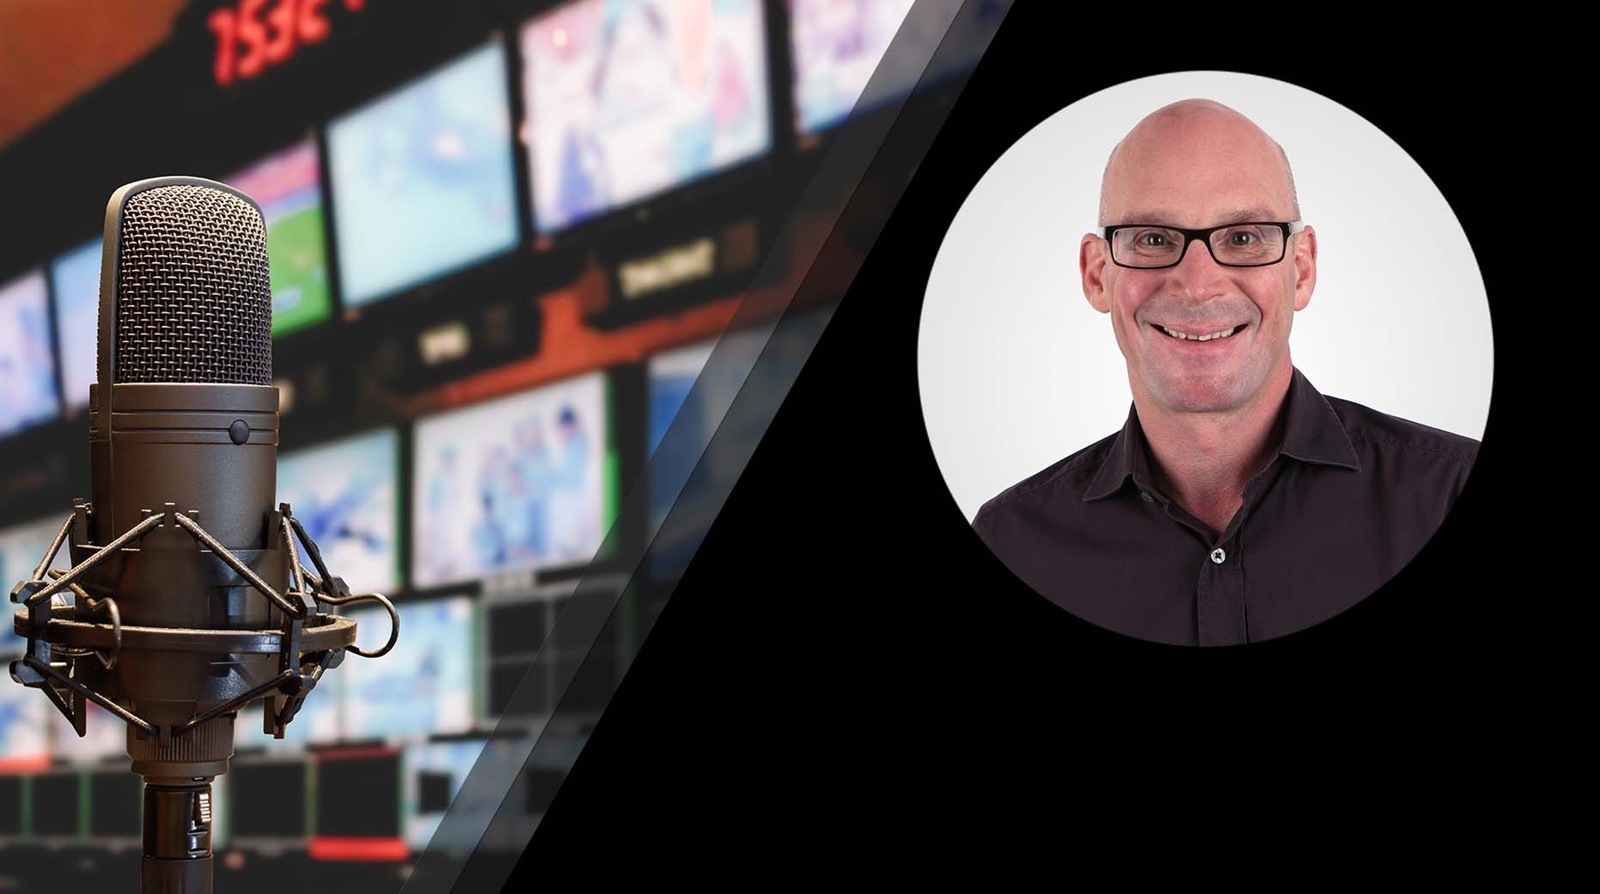 Peter Maag from Haivision joins the Making the Media Podcast